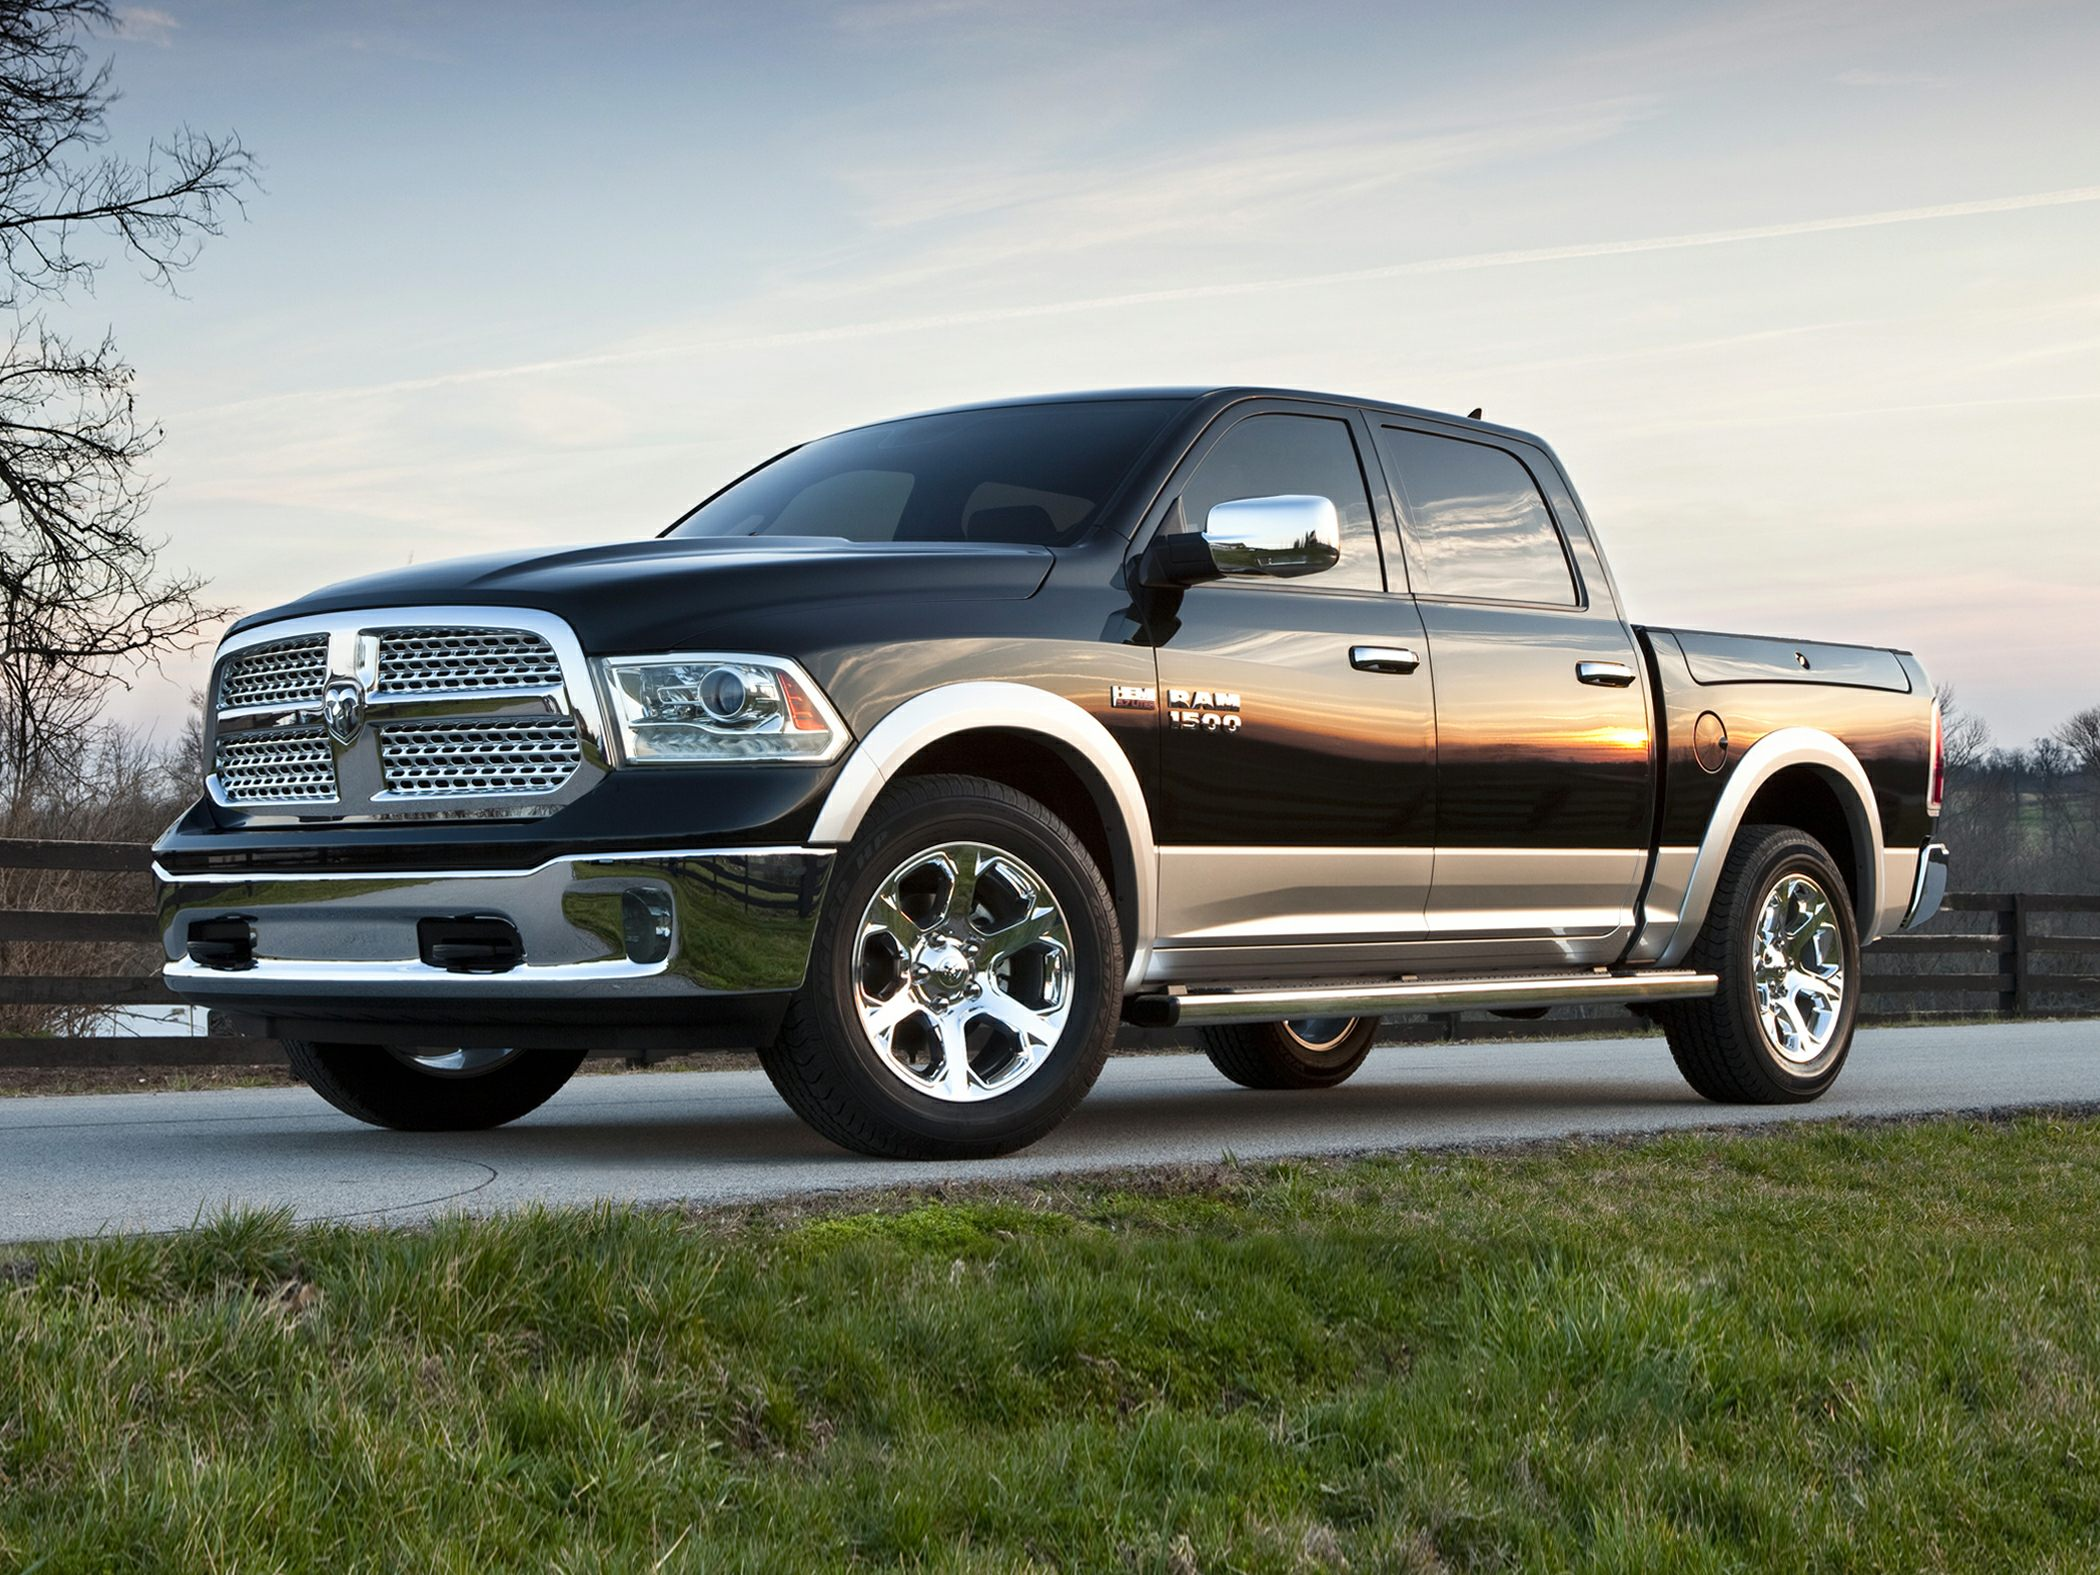 Diesel Ram 1500 Immensely Popular – 8,000 Orders In 3 Days